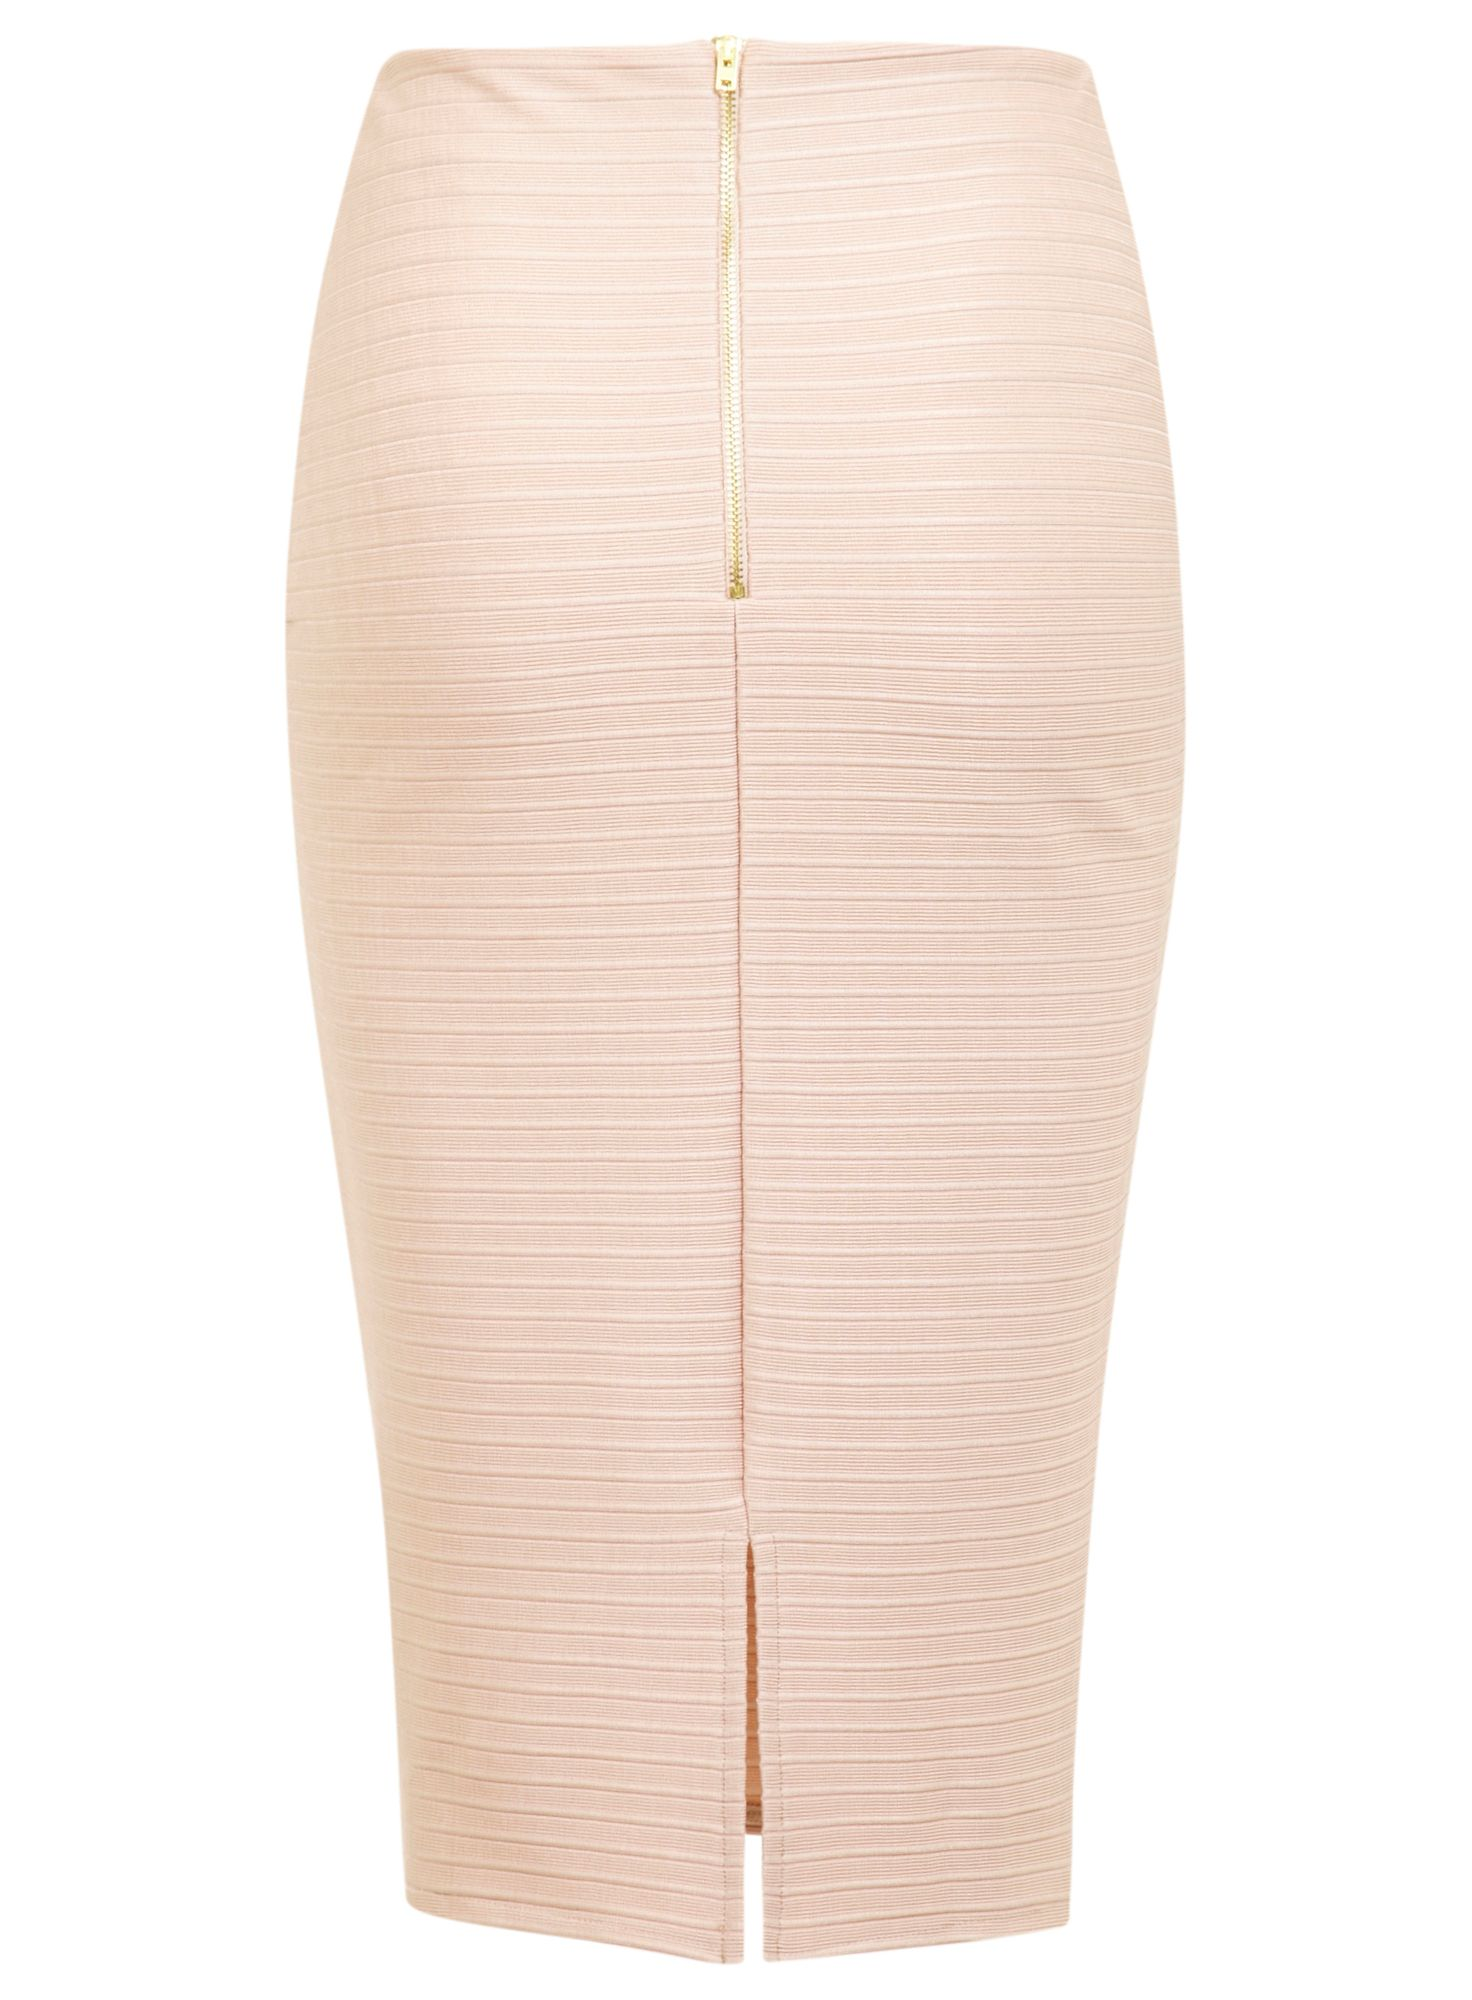 Nude bandage pencil skirt